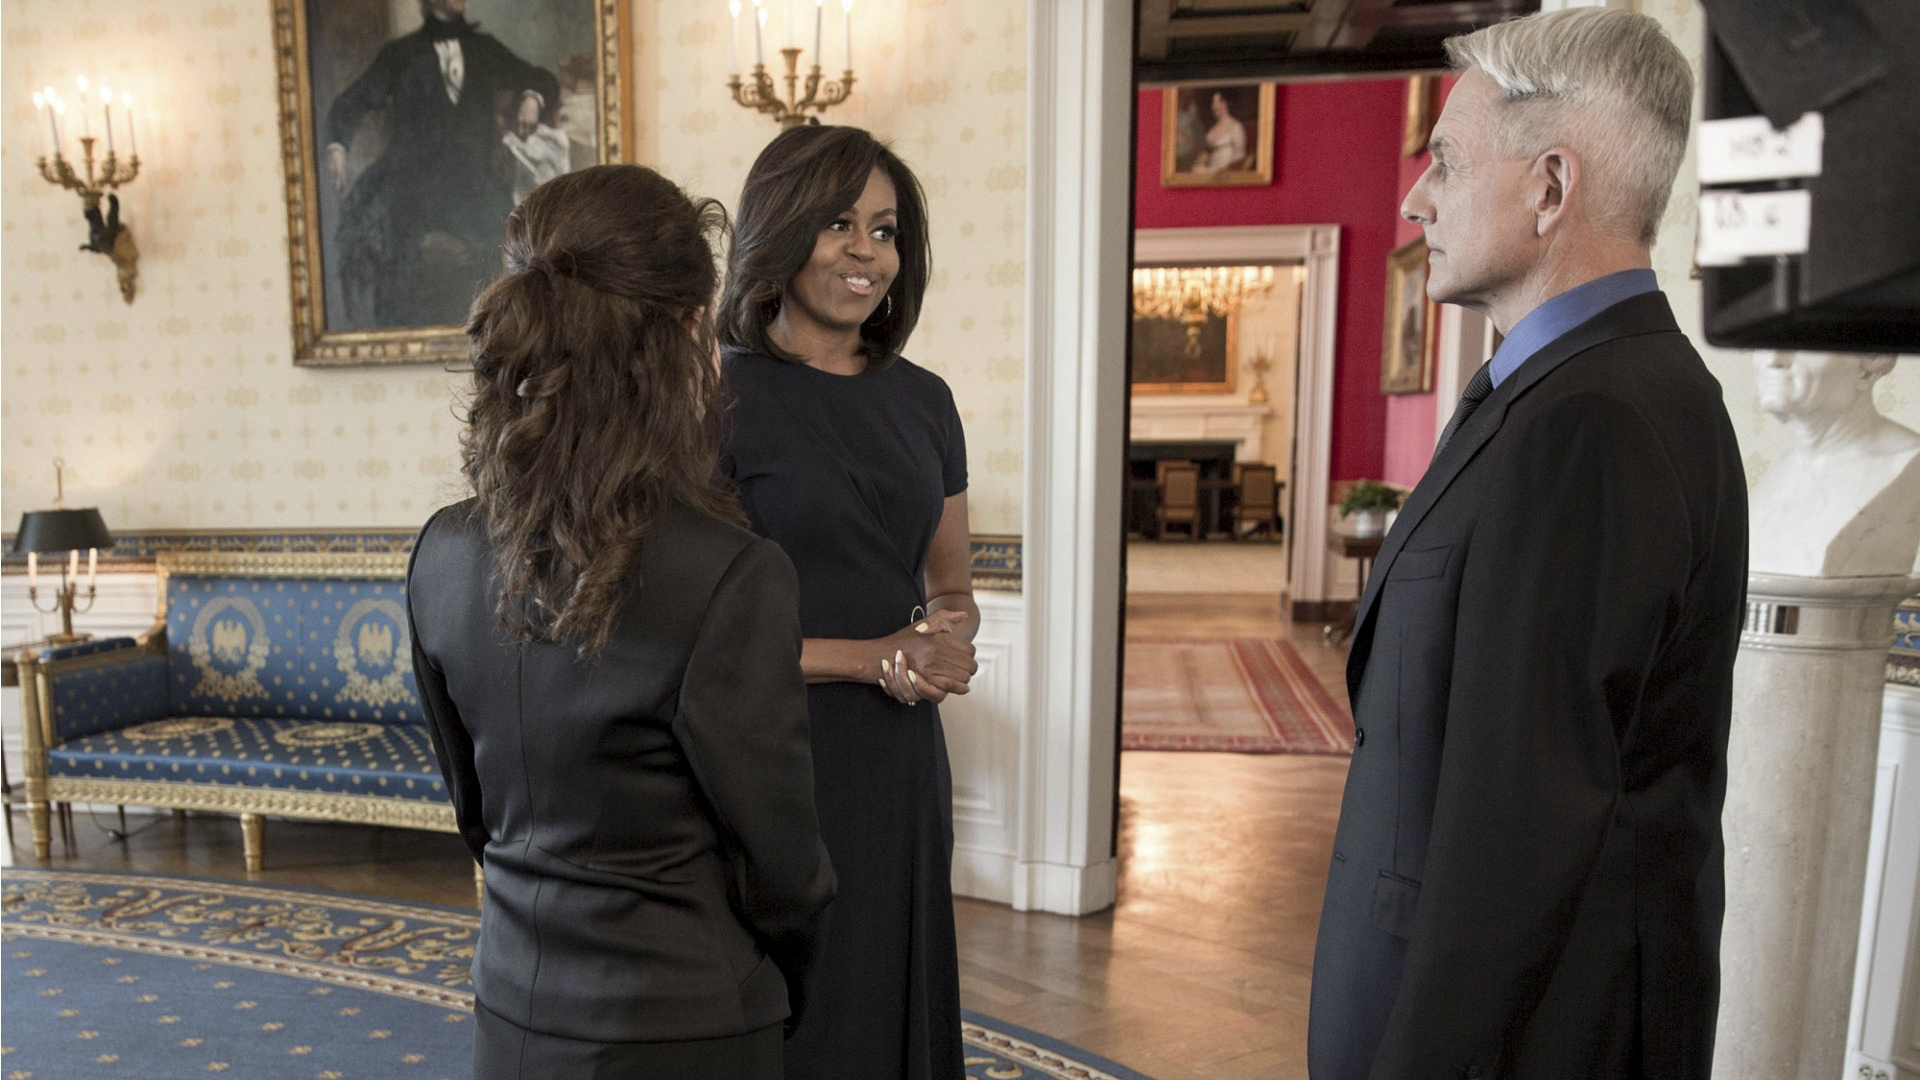 The scene with First Lady Michelle Obama was filmed inside the Blue Room of the White House.